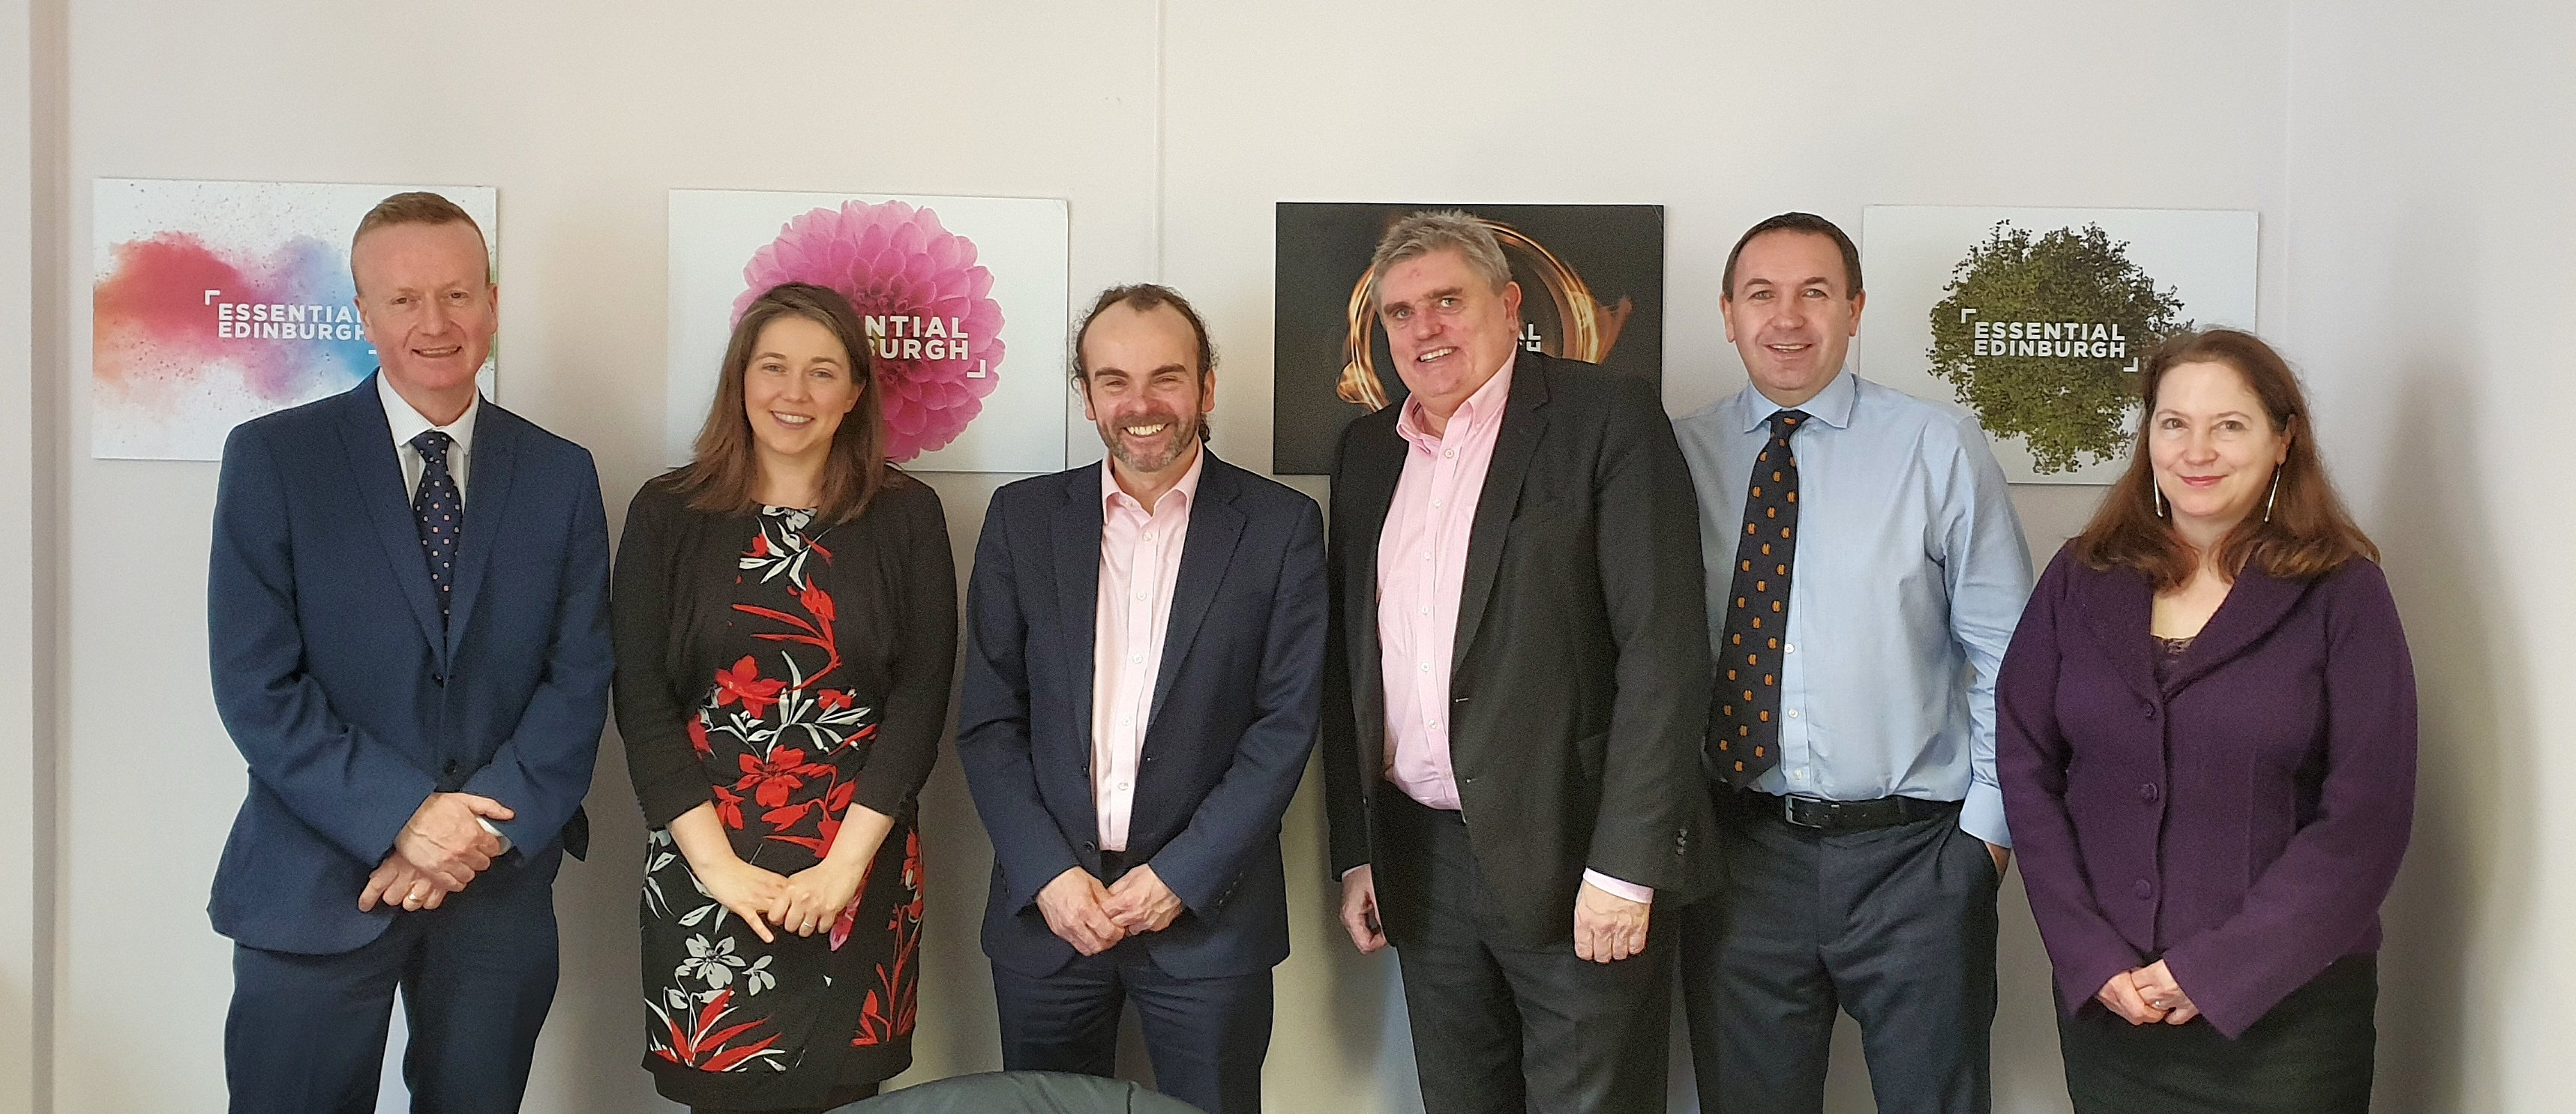 Newly formed Scottish City BIDs Group meets Cabinet Secretary